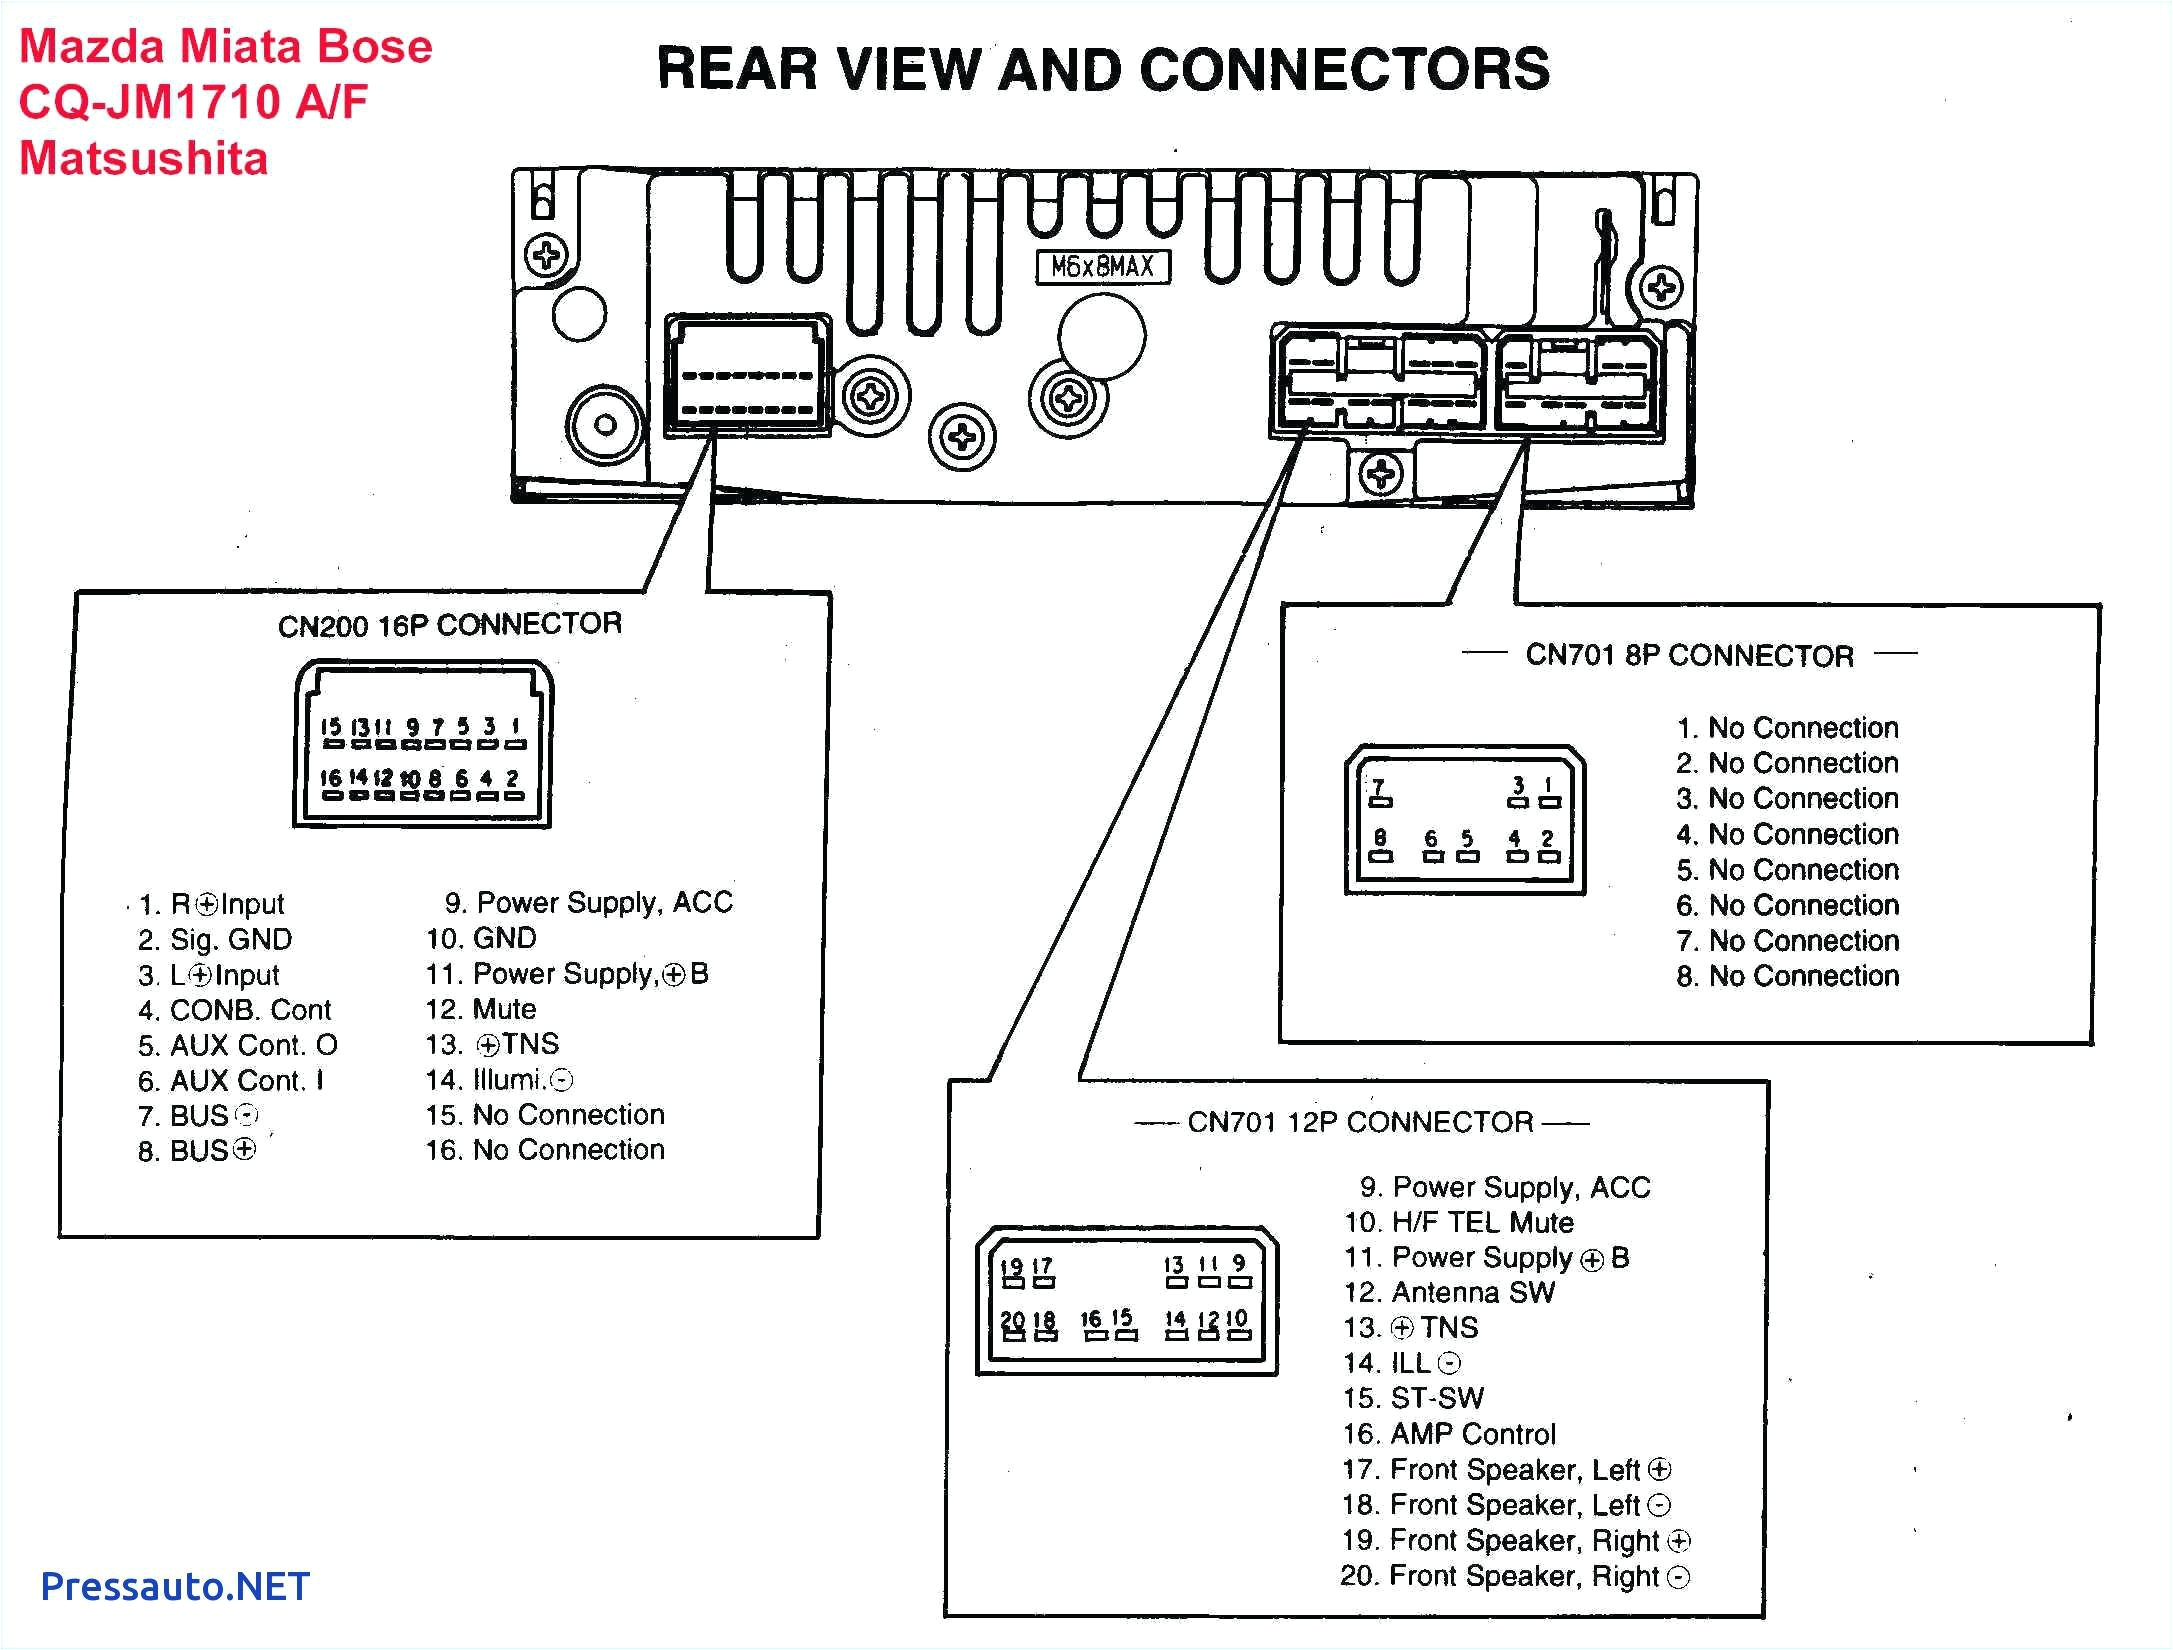 1990 nissan 300zx engine diagram car stereo wiring diagram lovely nissan harness 1990 adorable 300zx of 1990 nissan 300zx engine diagram jpg